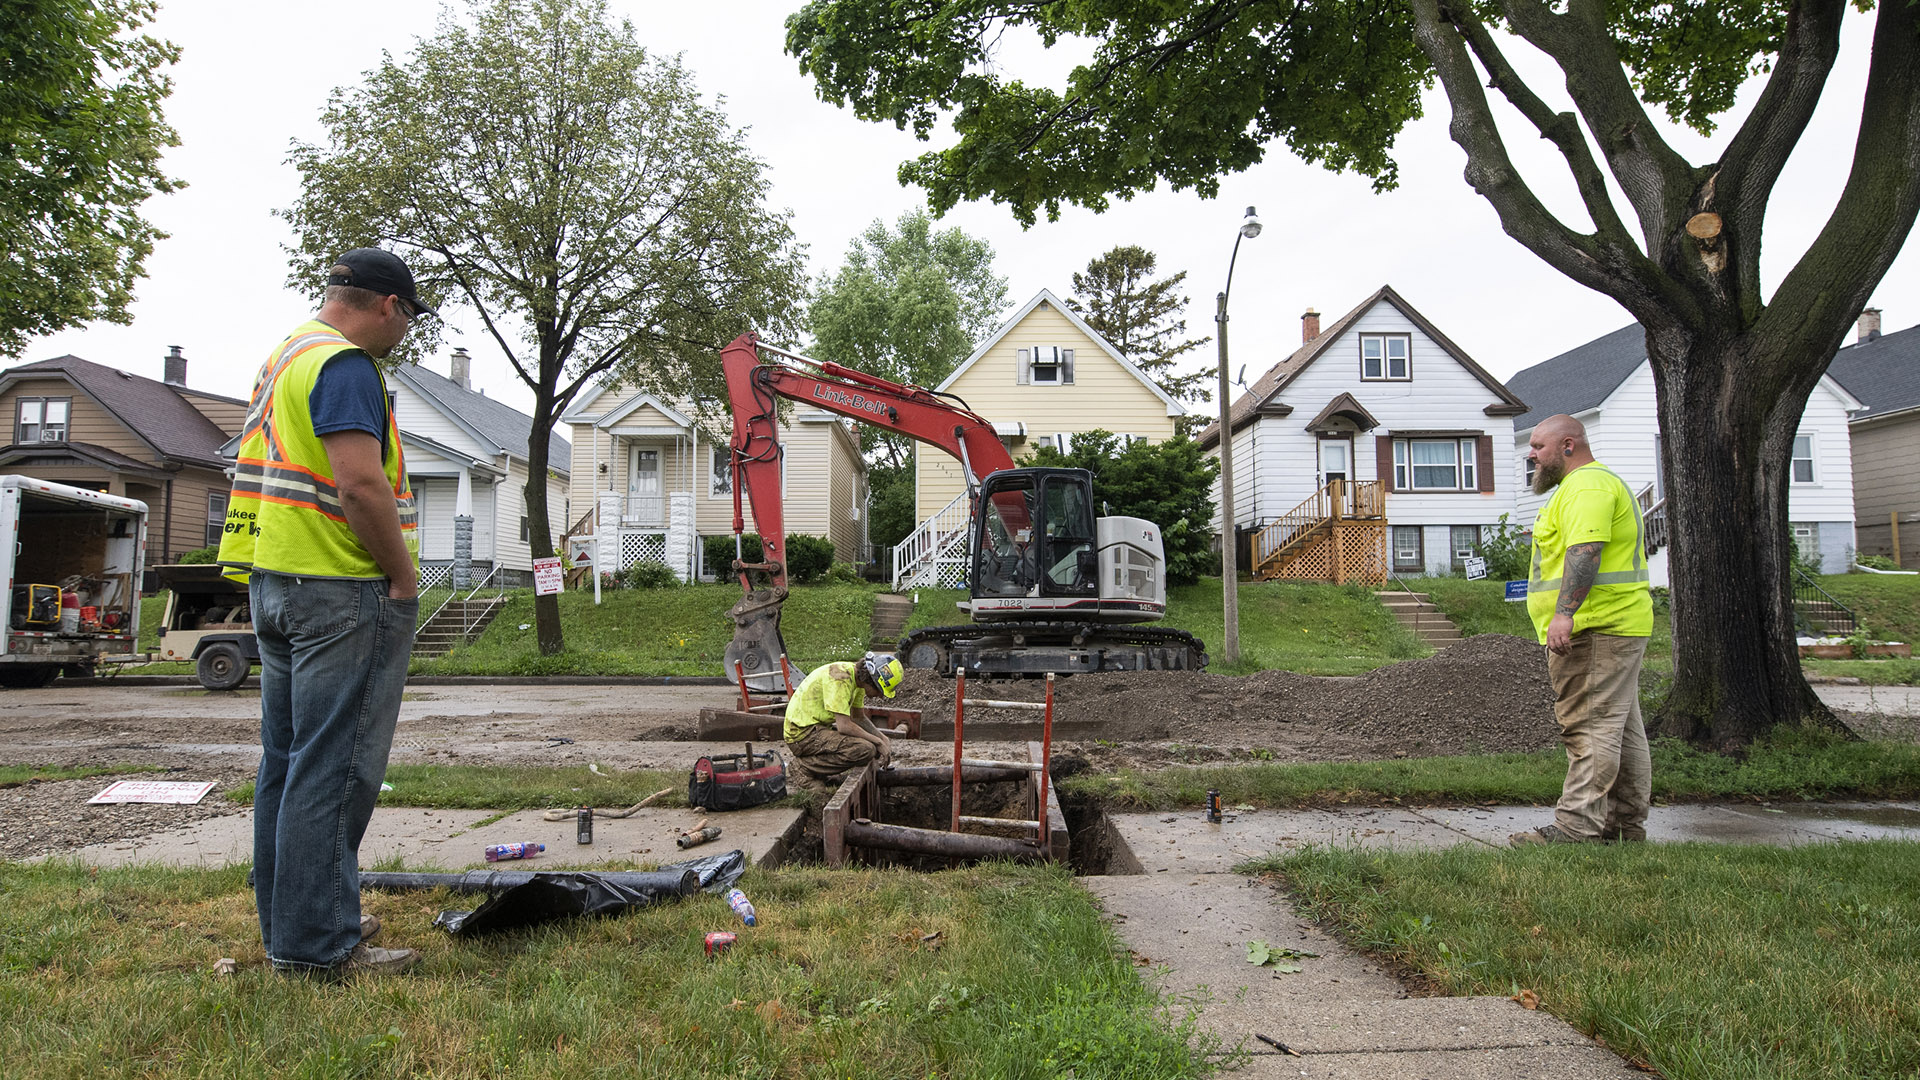 Workers stand on a lawn and sidewalk next to an excavated pit with a backhoe in the background.